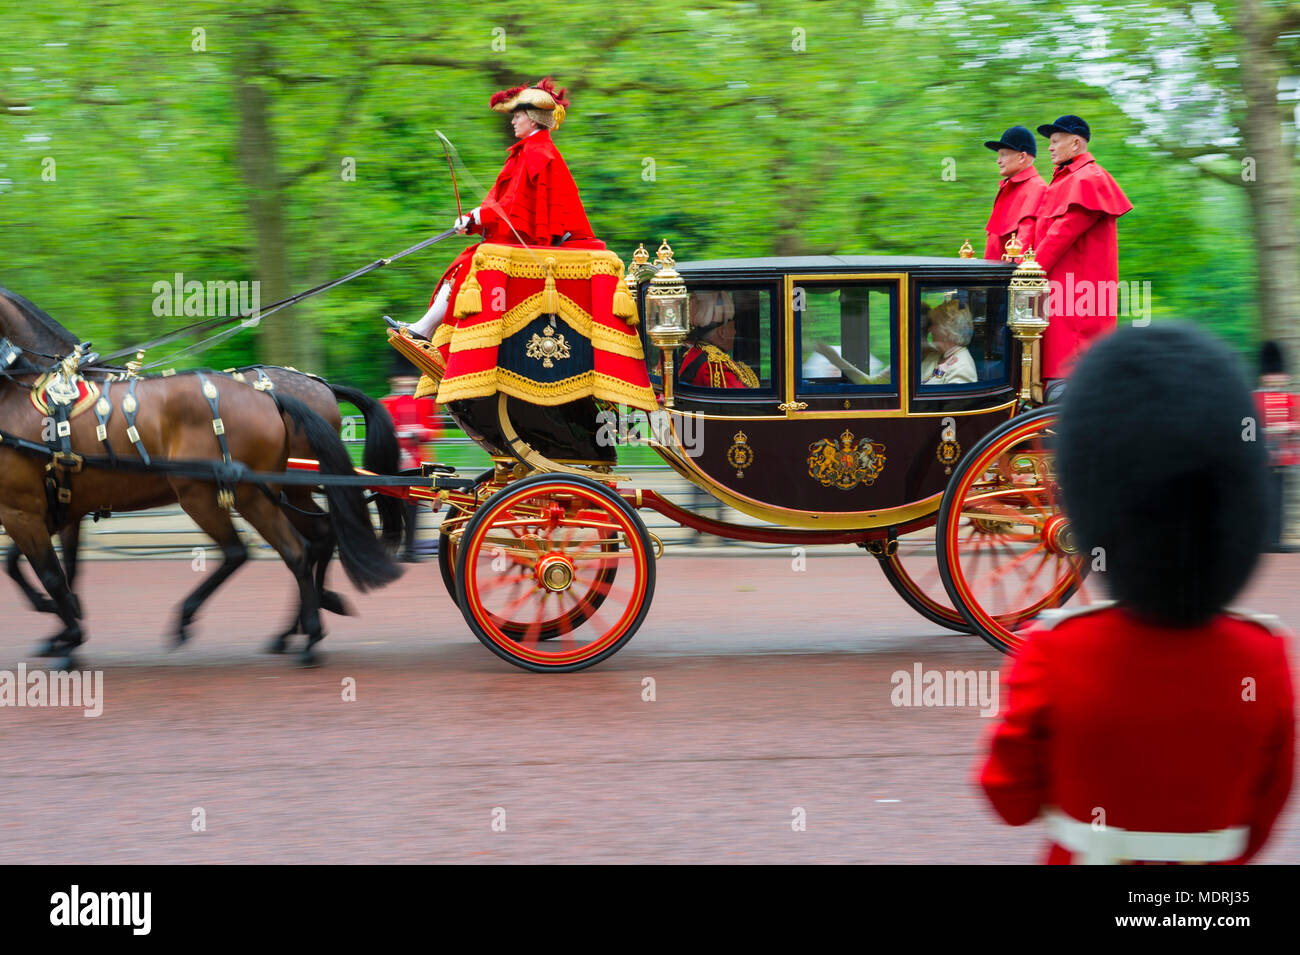 LONDON - MAY 18, 2016: A horse-drawn royal carriage passes in front of a guard from the household calvary on The Mall. - Stock Image